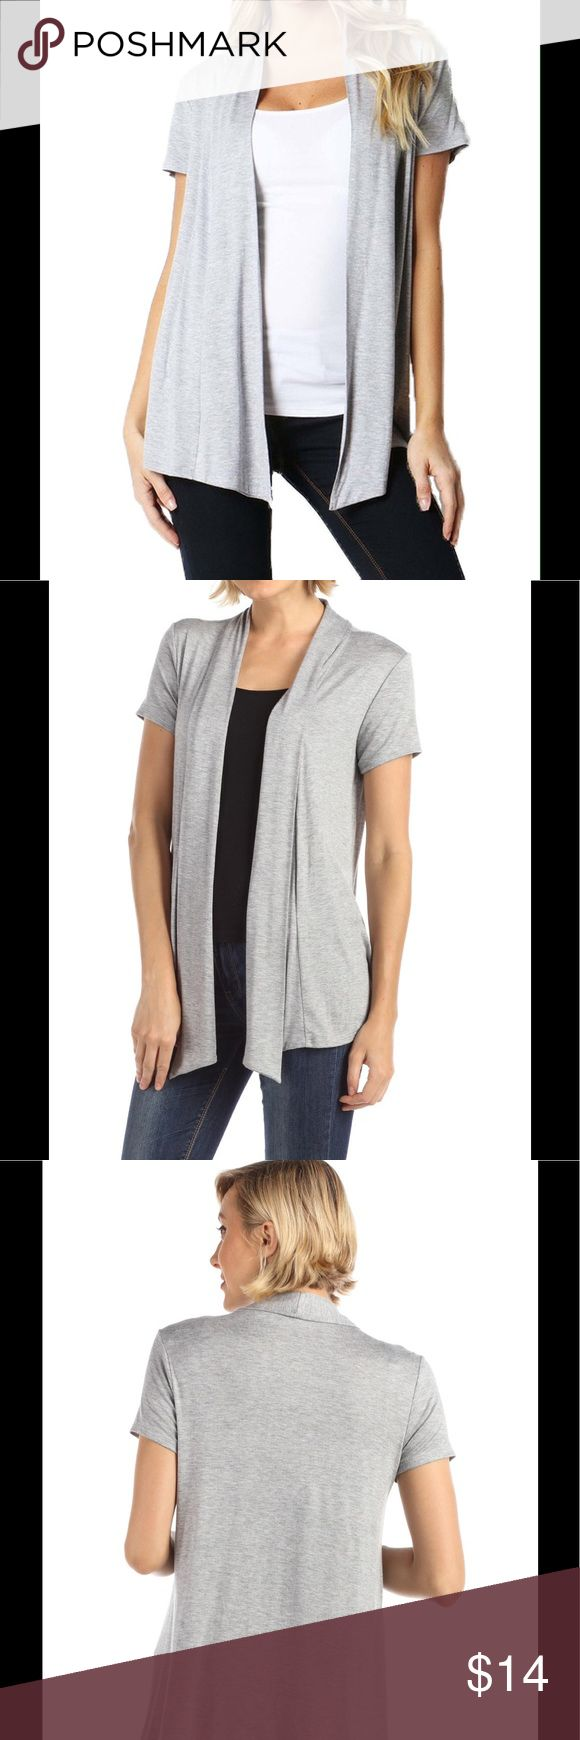 Short Sleeve Open Front Cardigan -GP10058 H grey 95% Rayon 5% Spendex GP Modo Sweaters Cardigans